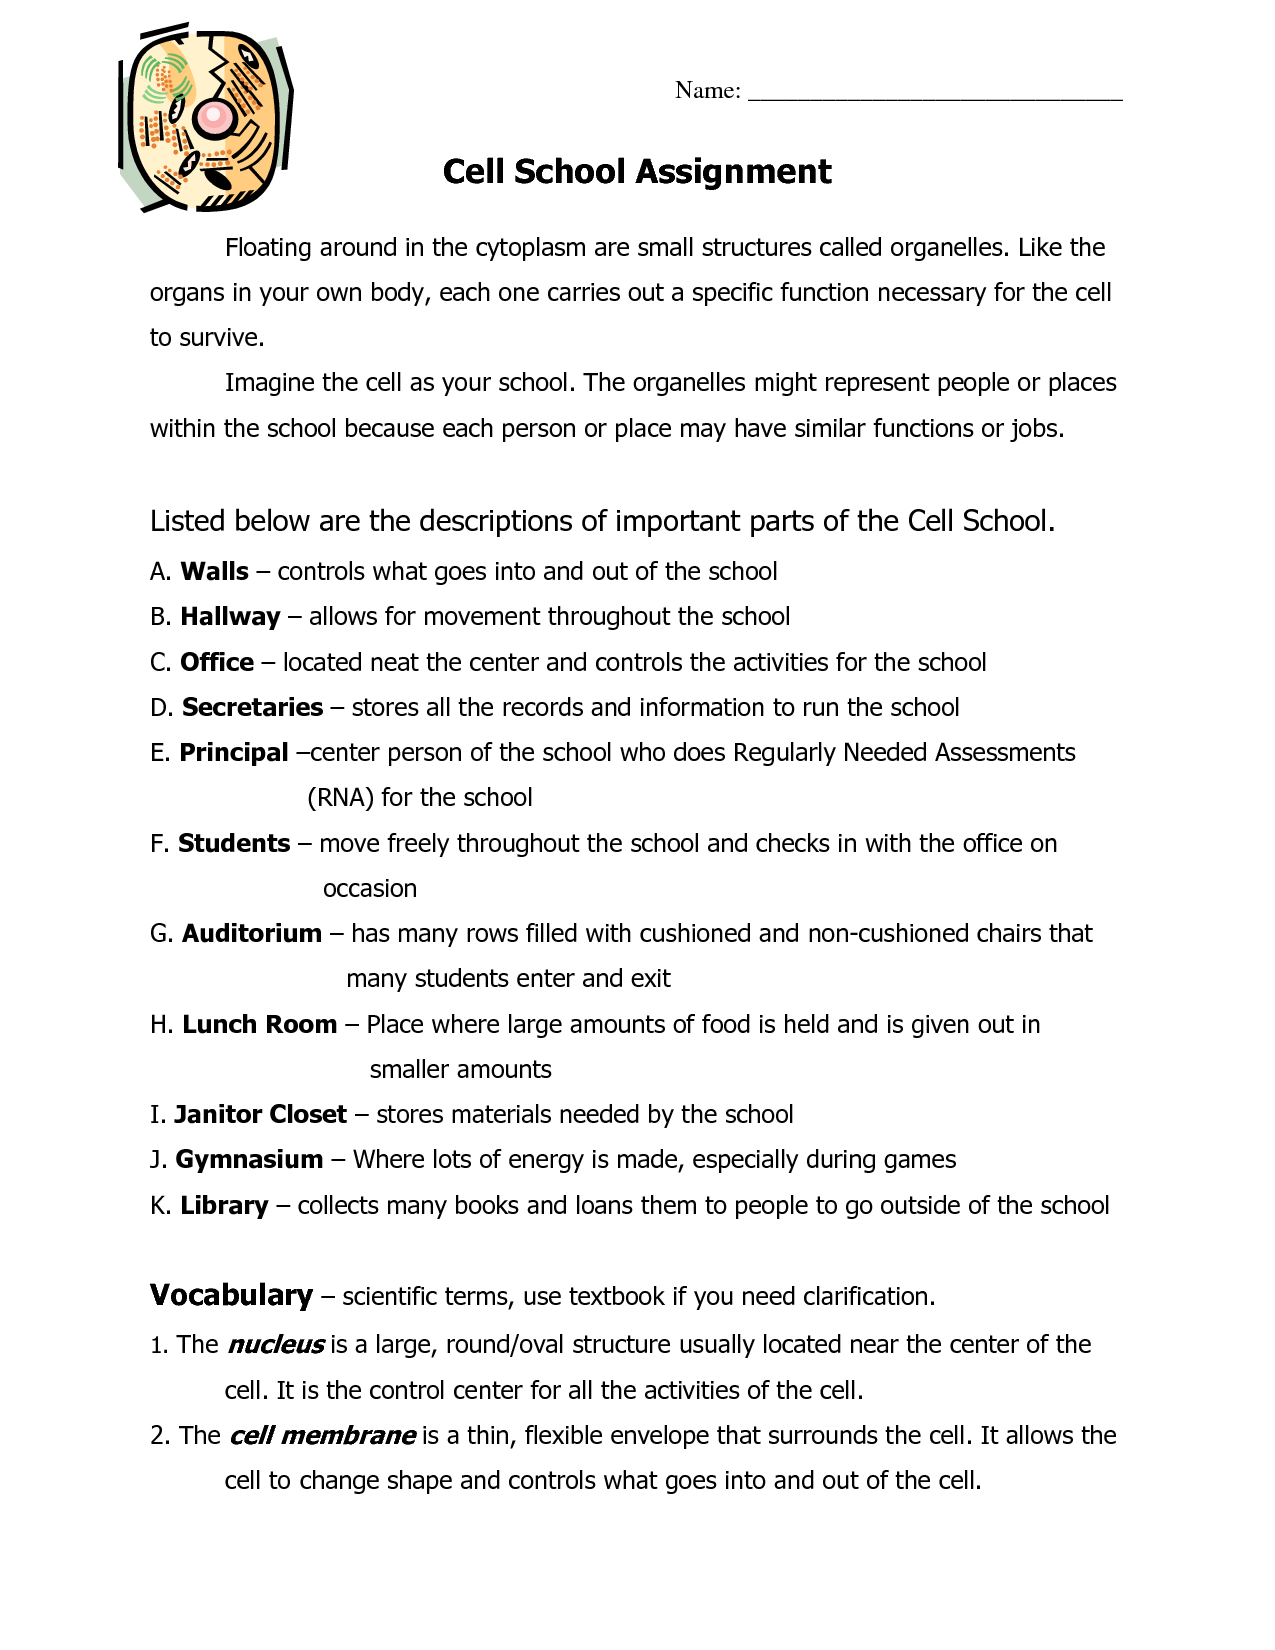 Presidents Worksheet For Middle School